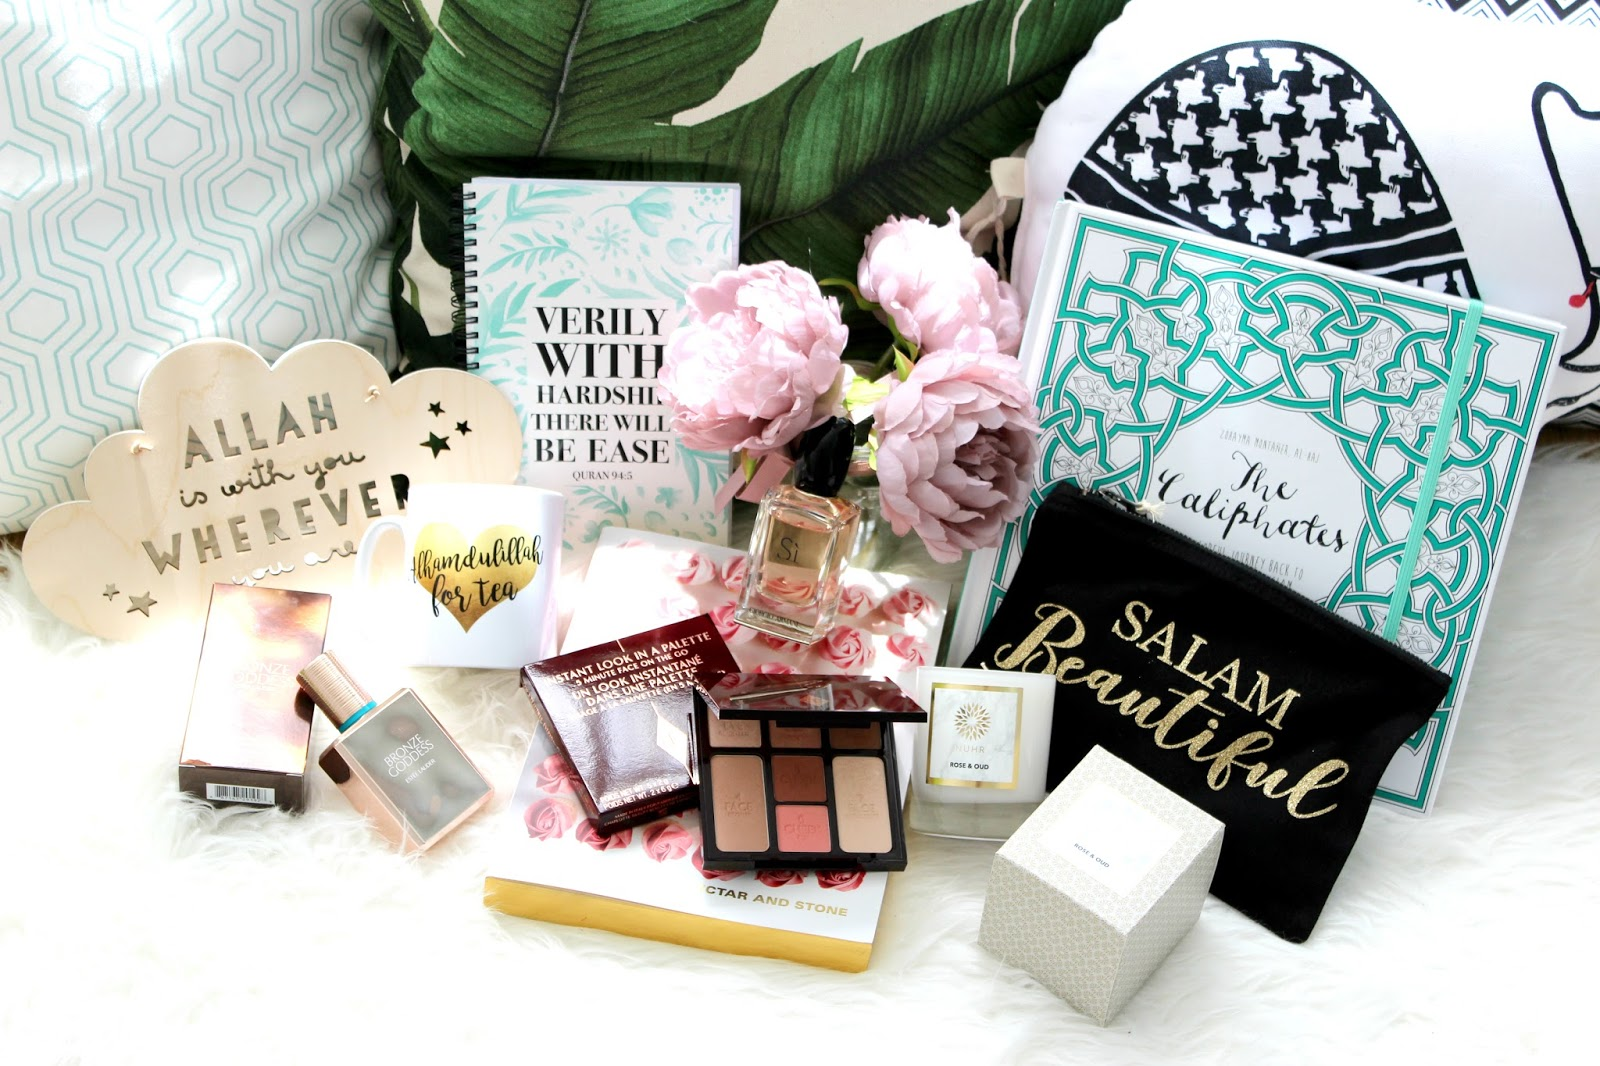 Eid gift guide 2017 giveaway shazia haque make up eid gift guide 2017 giveaway negle Images